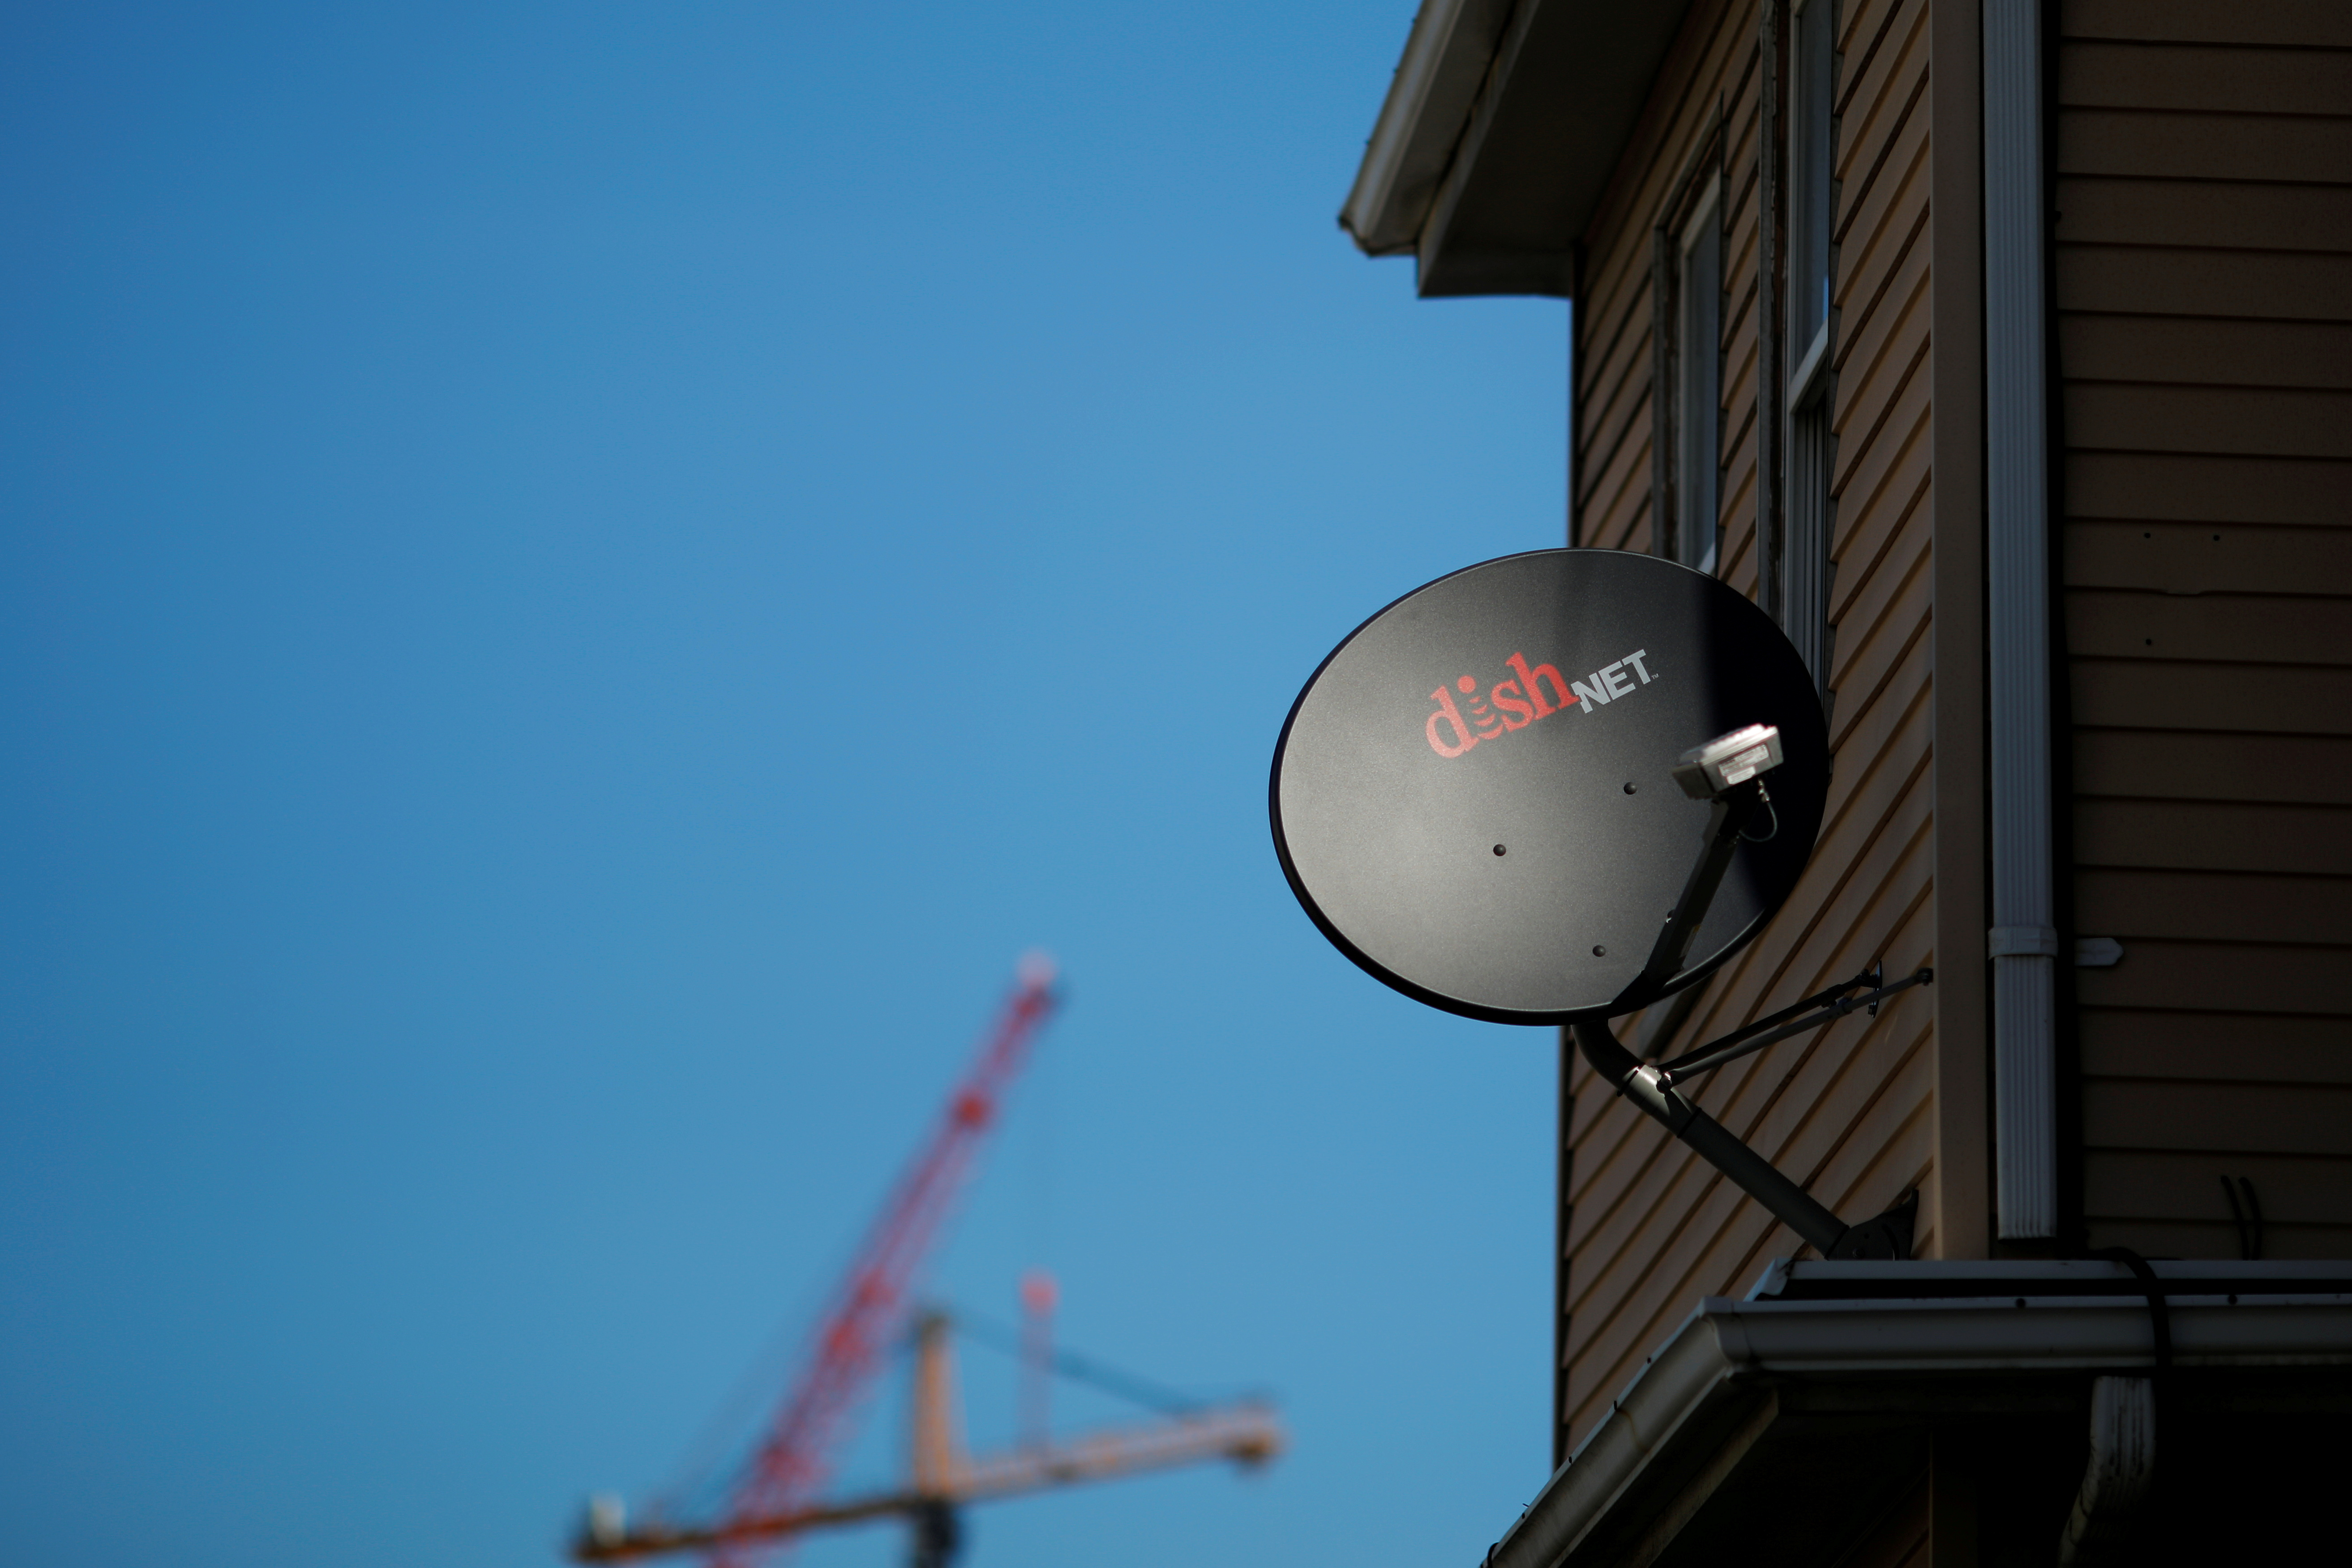 A Dish Network receiver hangs on a house in Somerville, Massachusetts, U.S., February 21, 2017.   REUTERS/Brian Snyder/File Photo